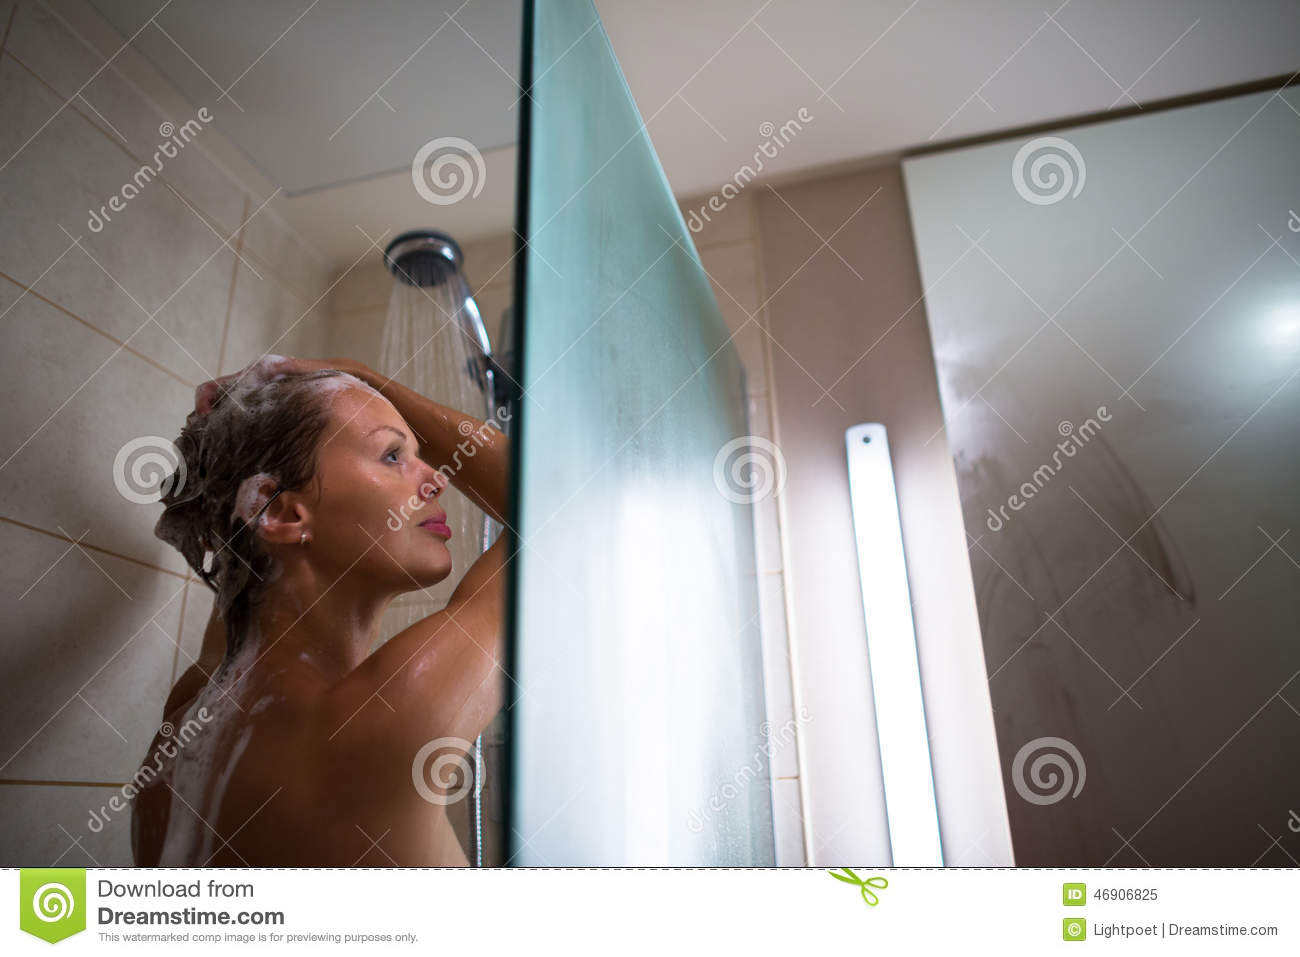 naked woman in the shower in the position